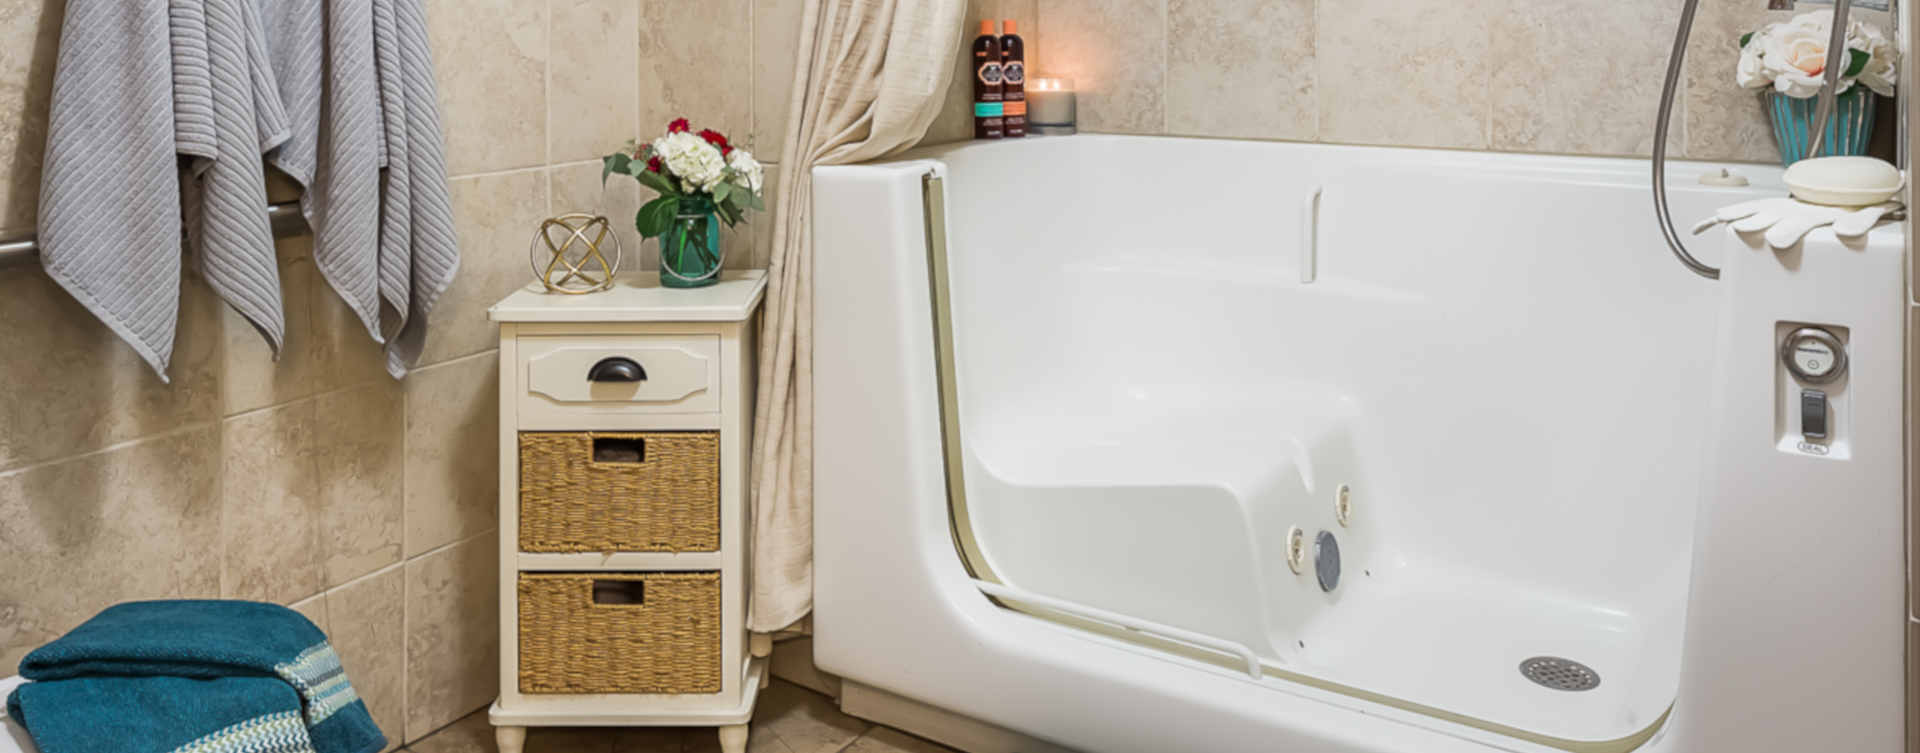 Our whirlpool bathtub creates a spa-like environment tailored to enhance your relaxation and enjoyment at Bickford of Urbandale